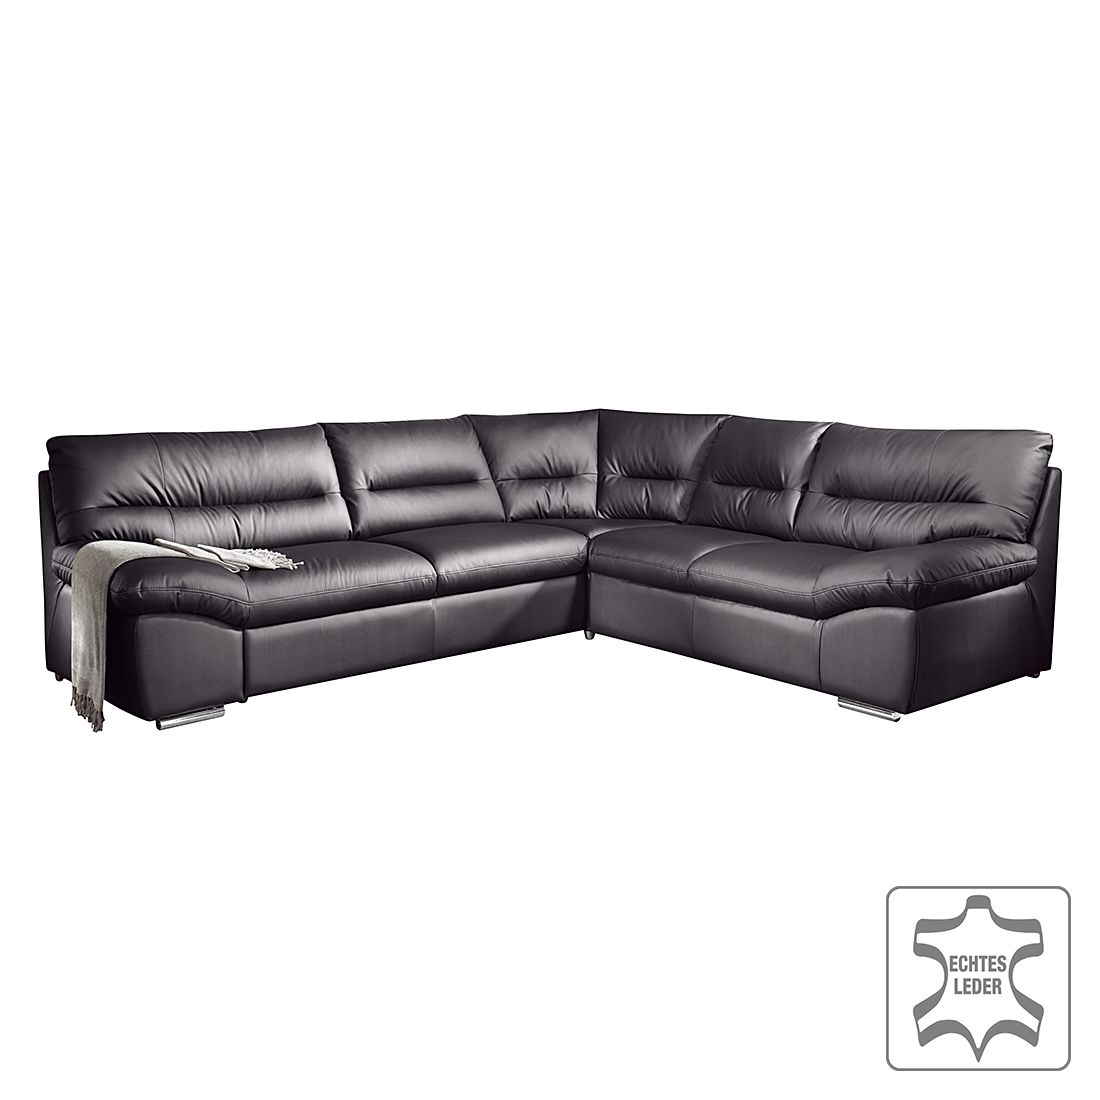 sofas mit schlaffunktion g nstig kaufen. Black Bedroom Furniture Sets. Home Design Ideas